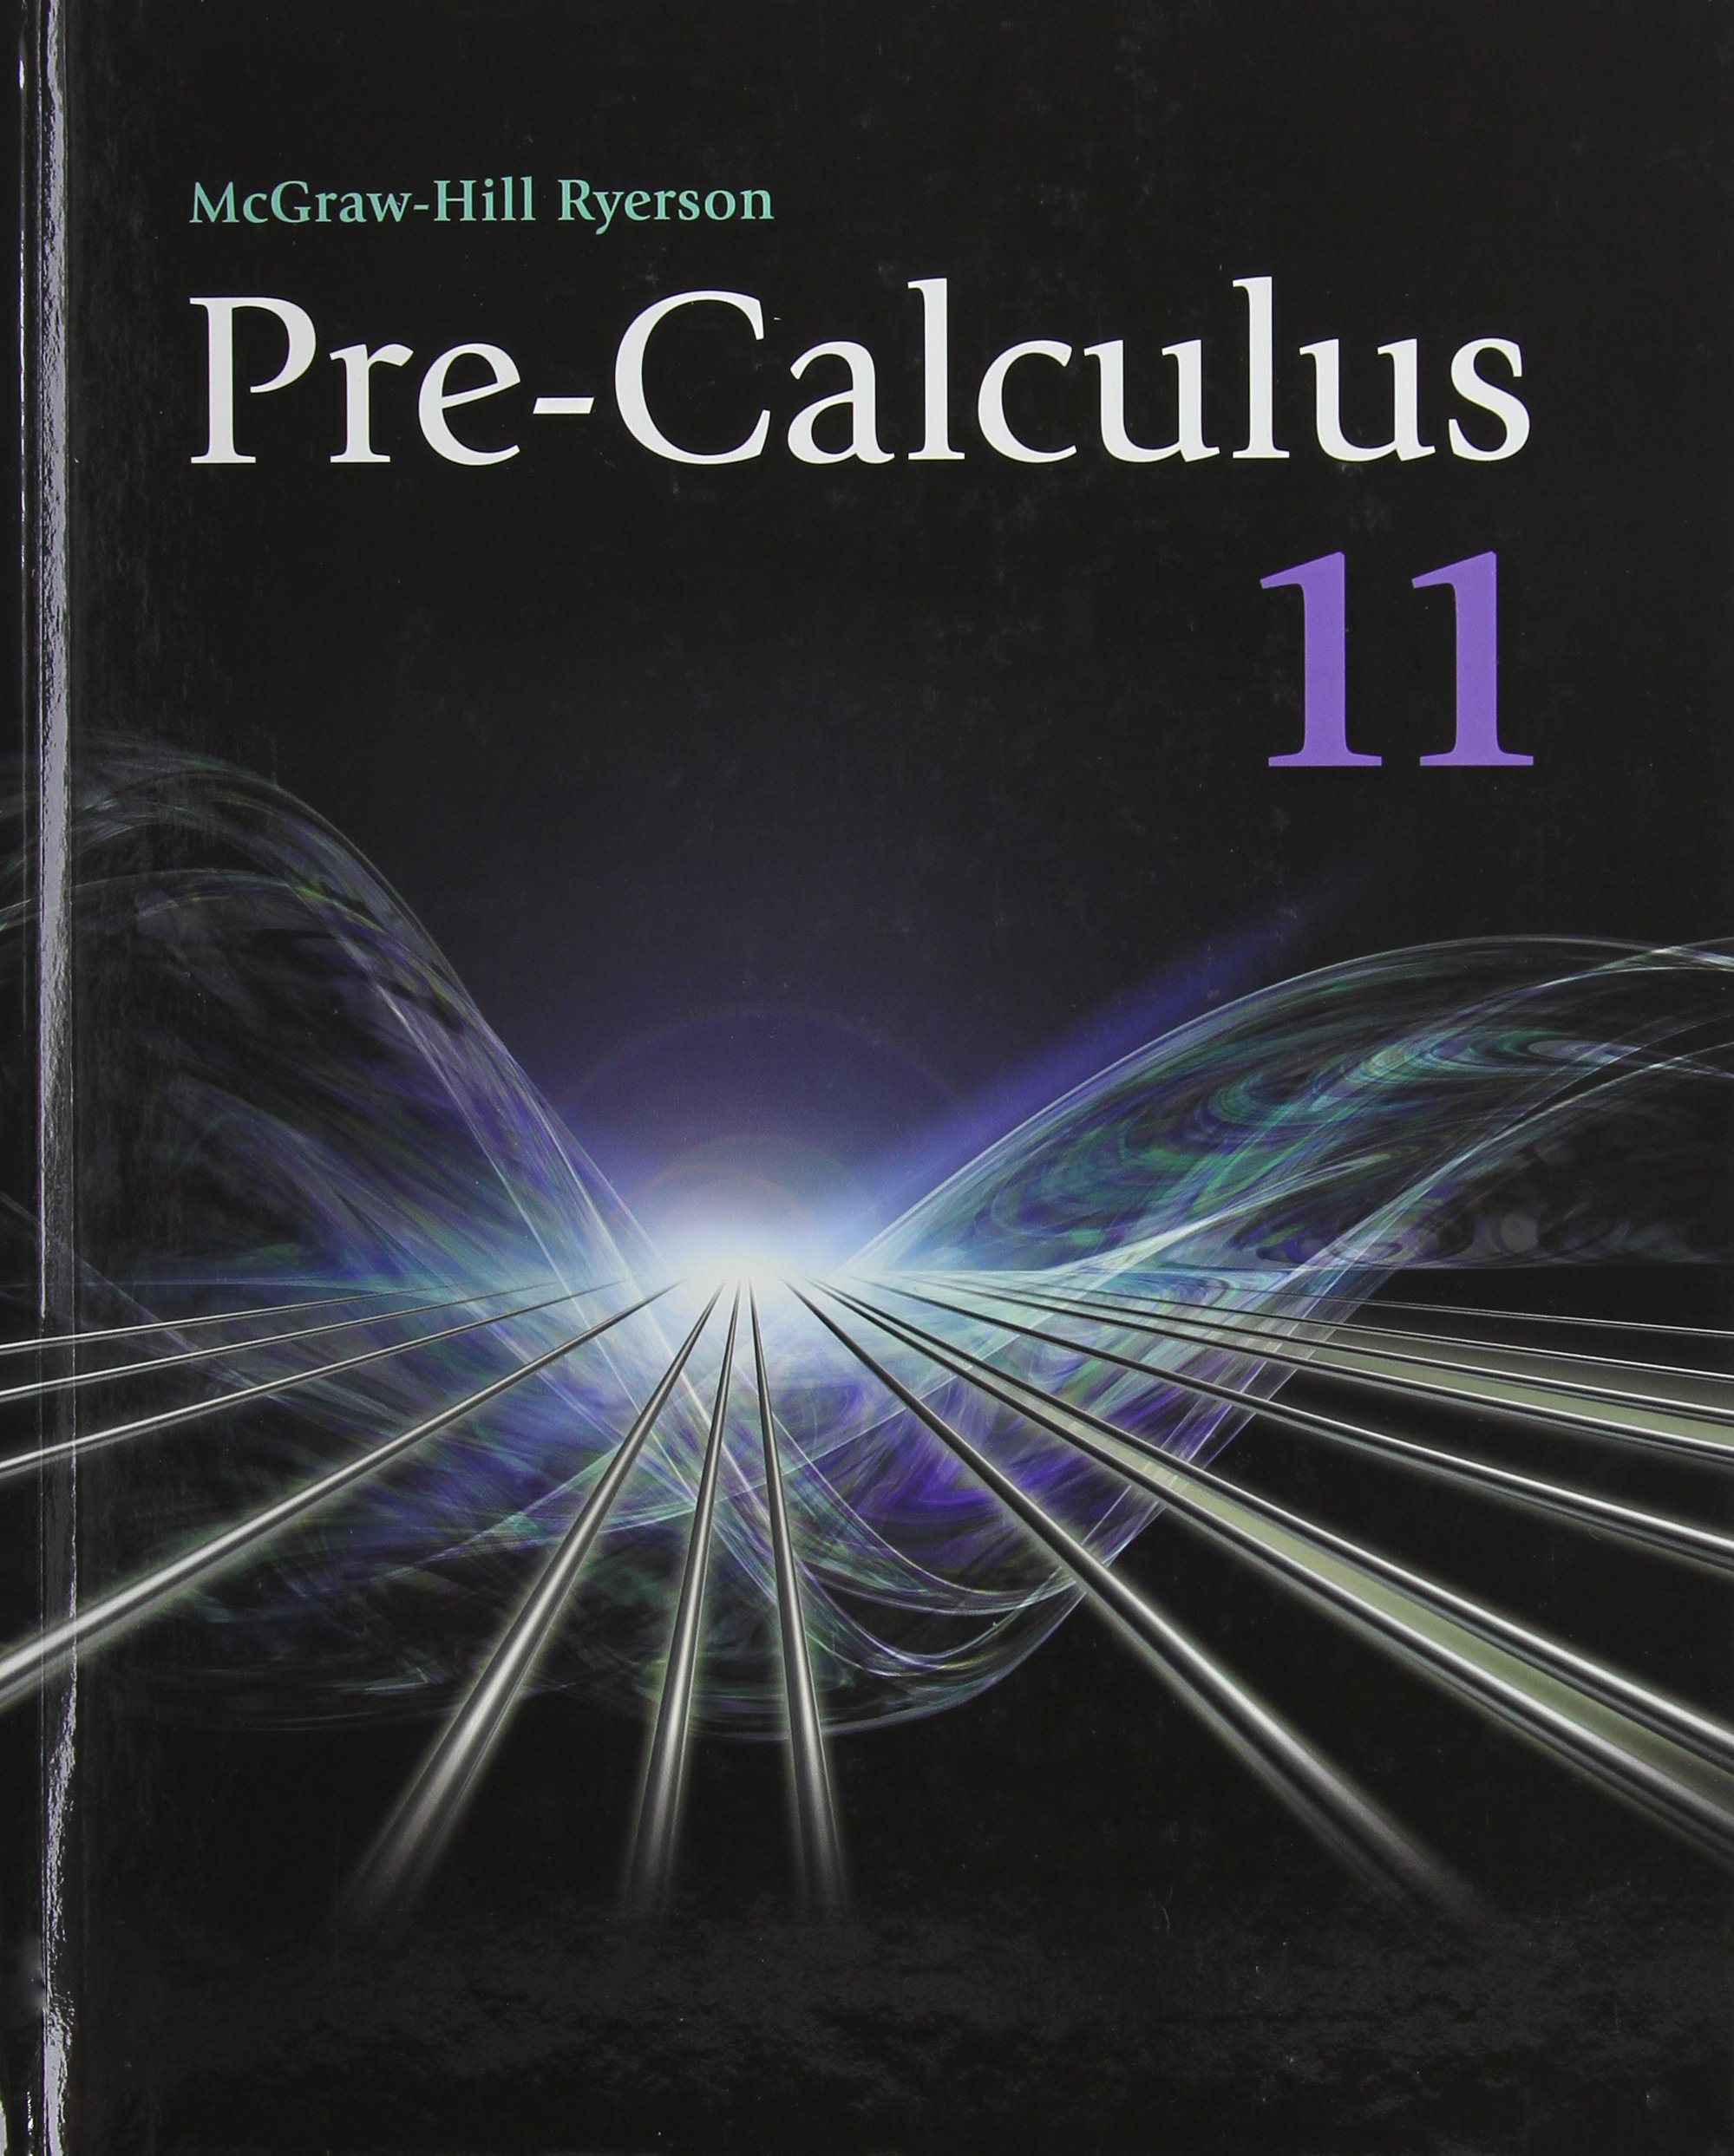 Mcgraw hill ryerson mathematics 11 ebook coupon codes choice image mcgraw hill ryerson mathematics 11 ebook coupon codes choice image free ebooks and more fandeluxe Image collections